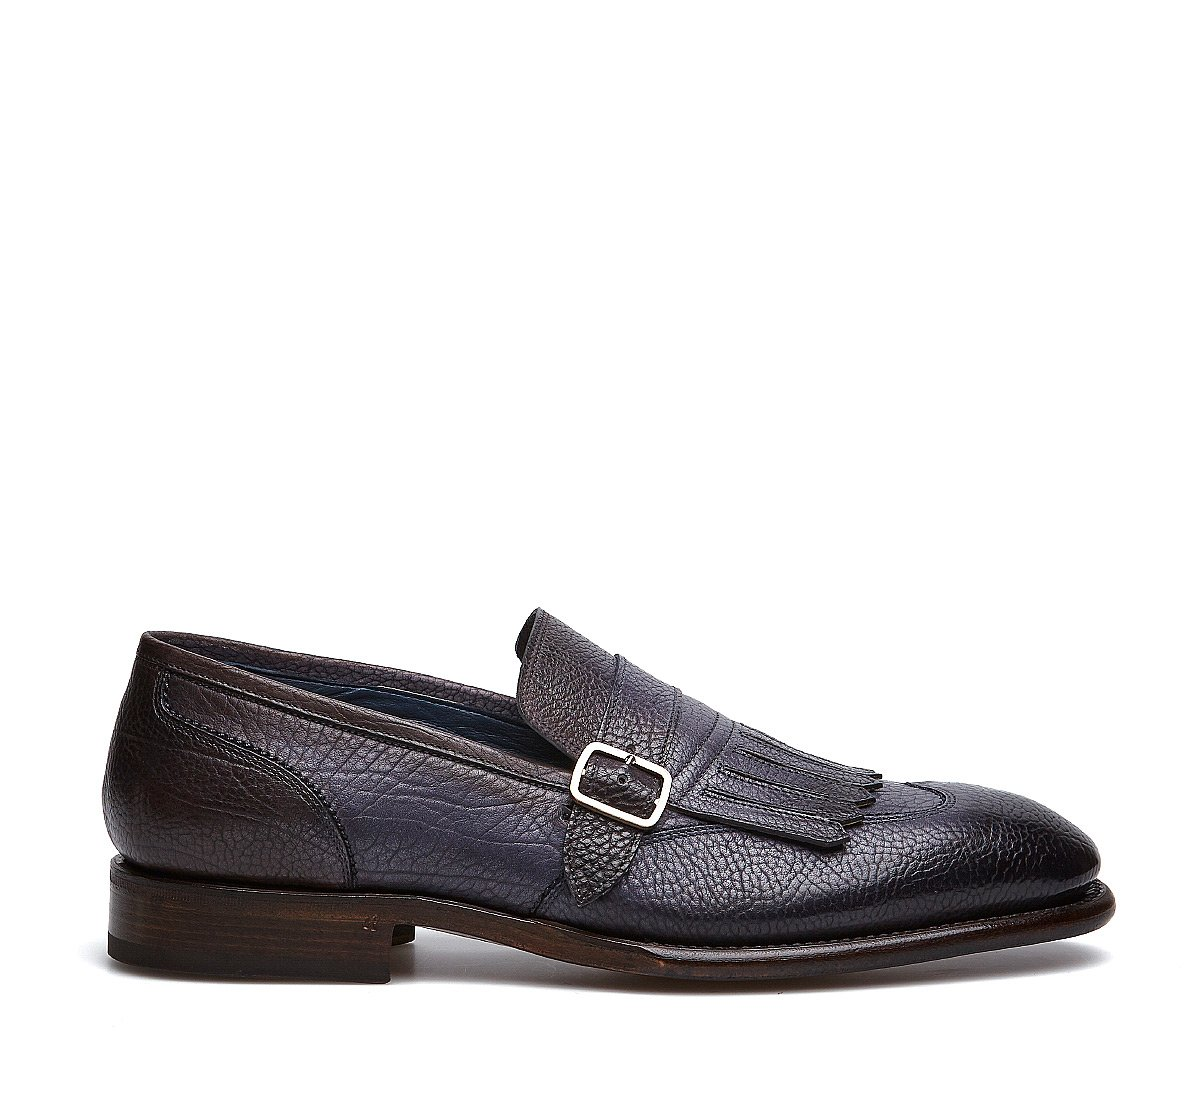 Fabi Flex Goodyear monk-strap shoes in exquisite hand-aged calfskin